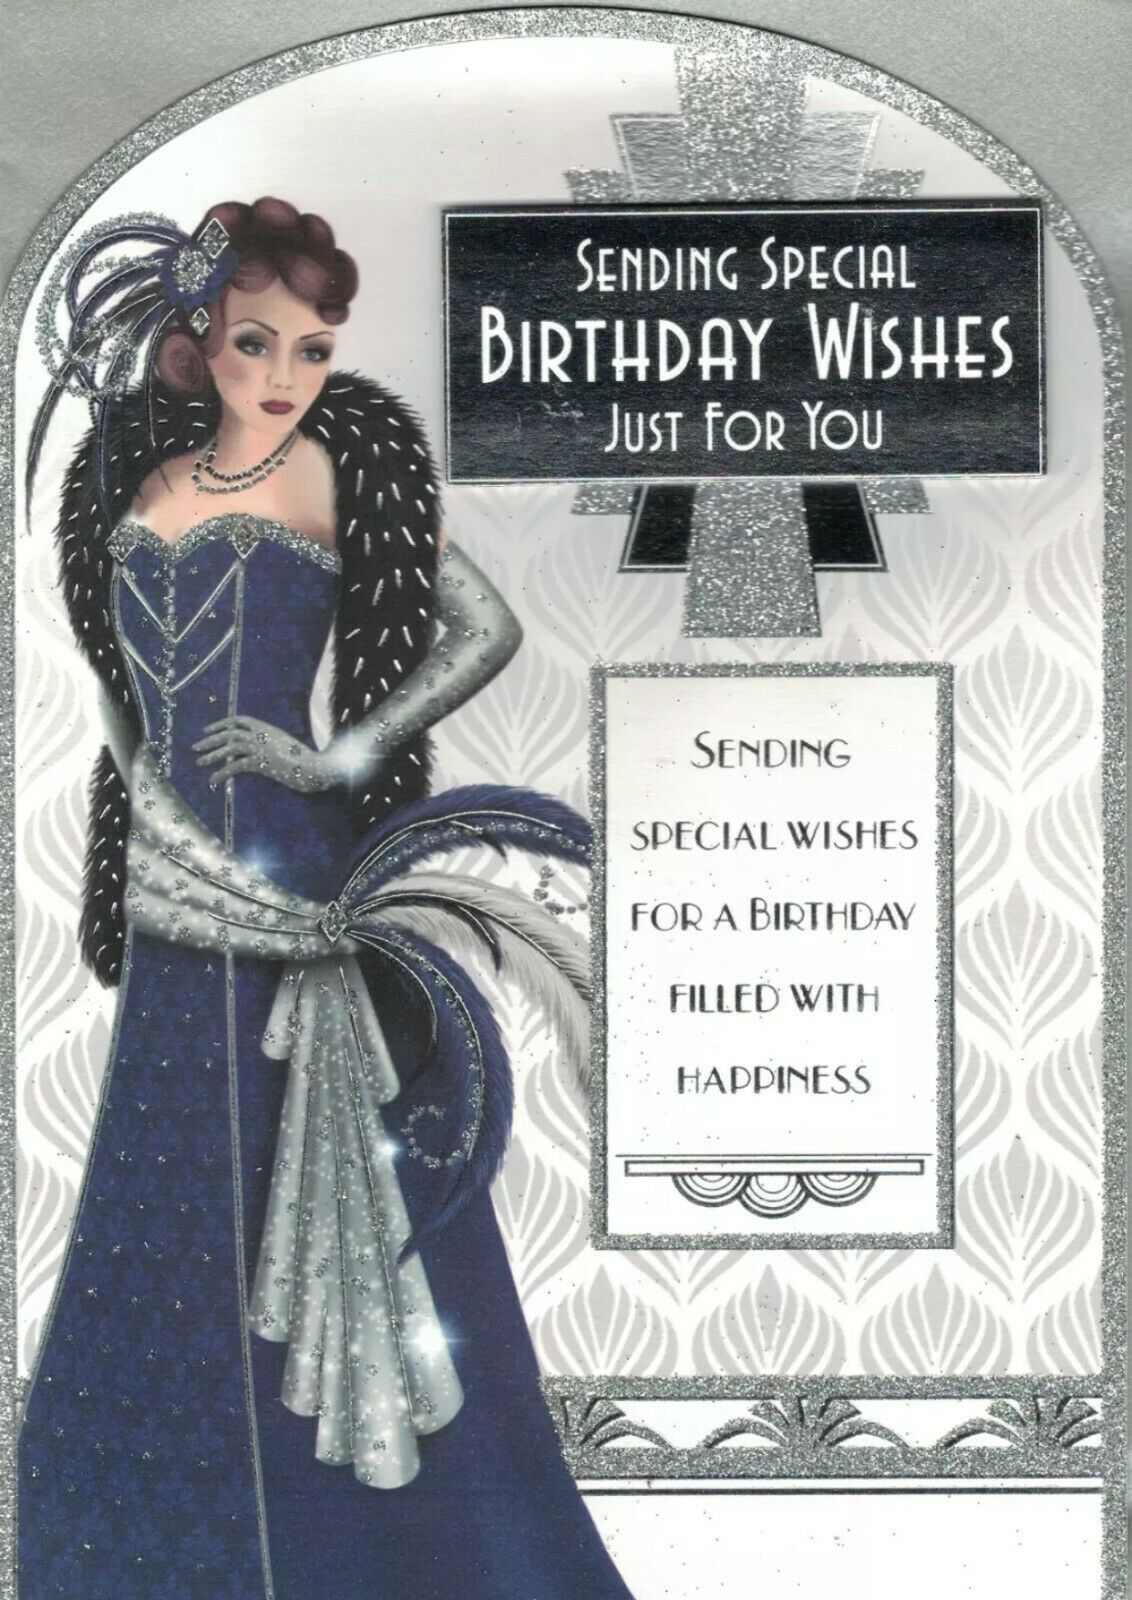 Art Deco Birthday Card - Sending Special Birthday Wishes Just For You